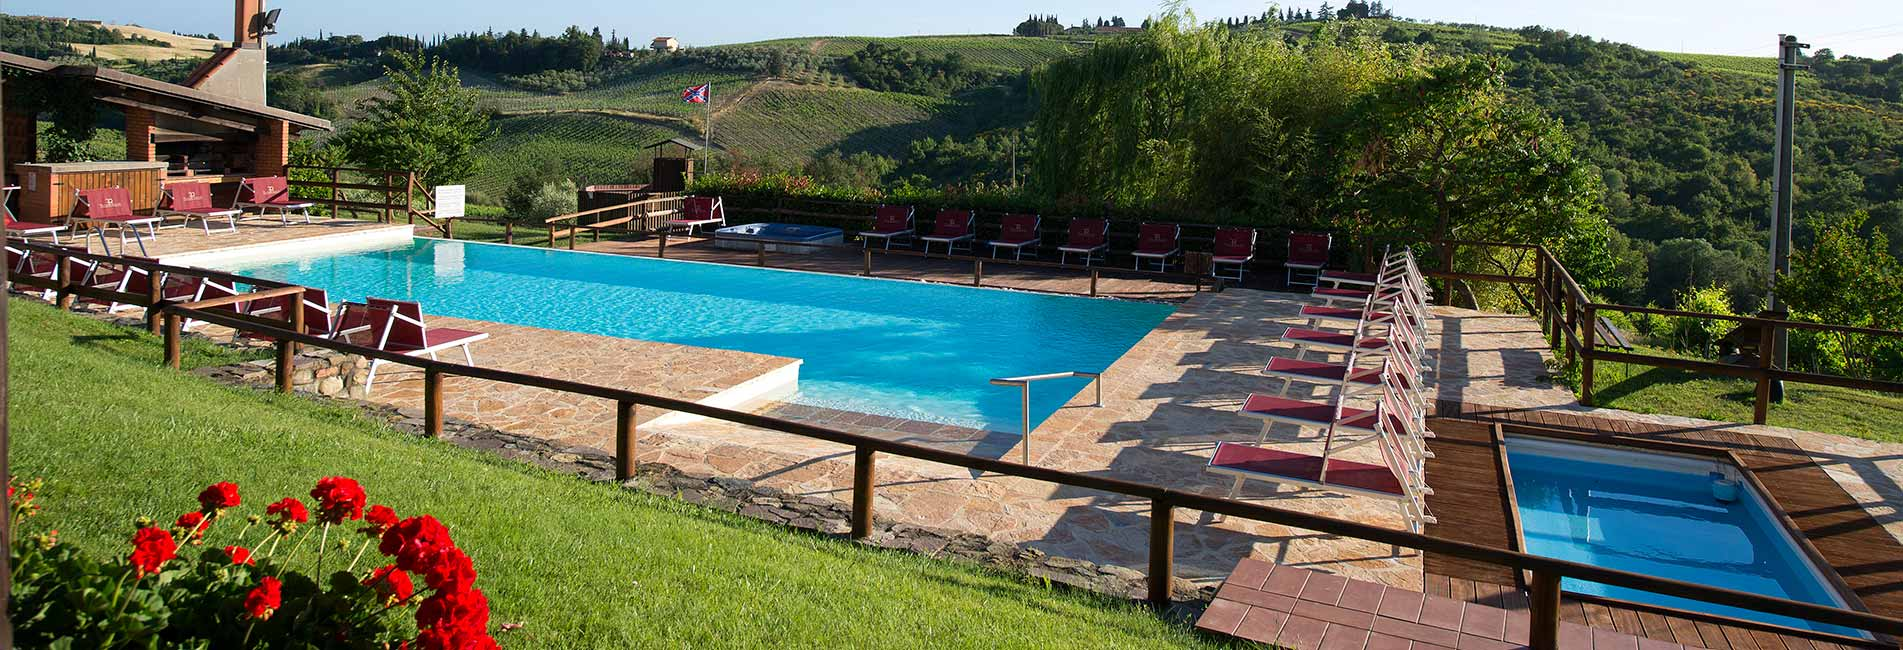 borgo_filicardo_apartments_chianti_tuscany_swimming_pool8